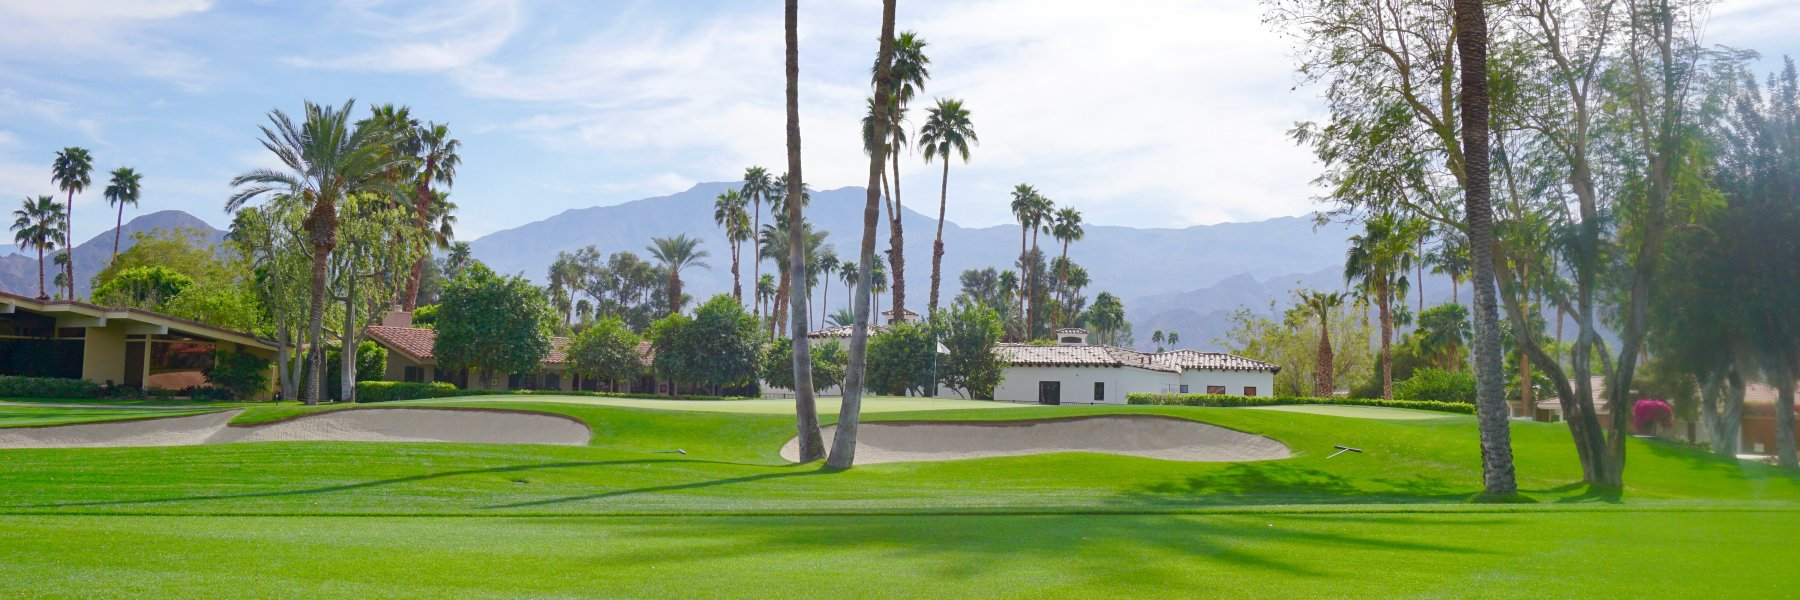 La Quinta Country Club Estates is a community of homes in La Quinta California